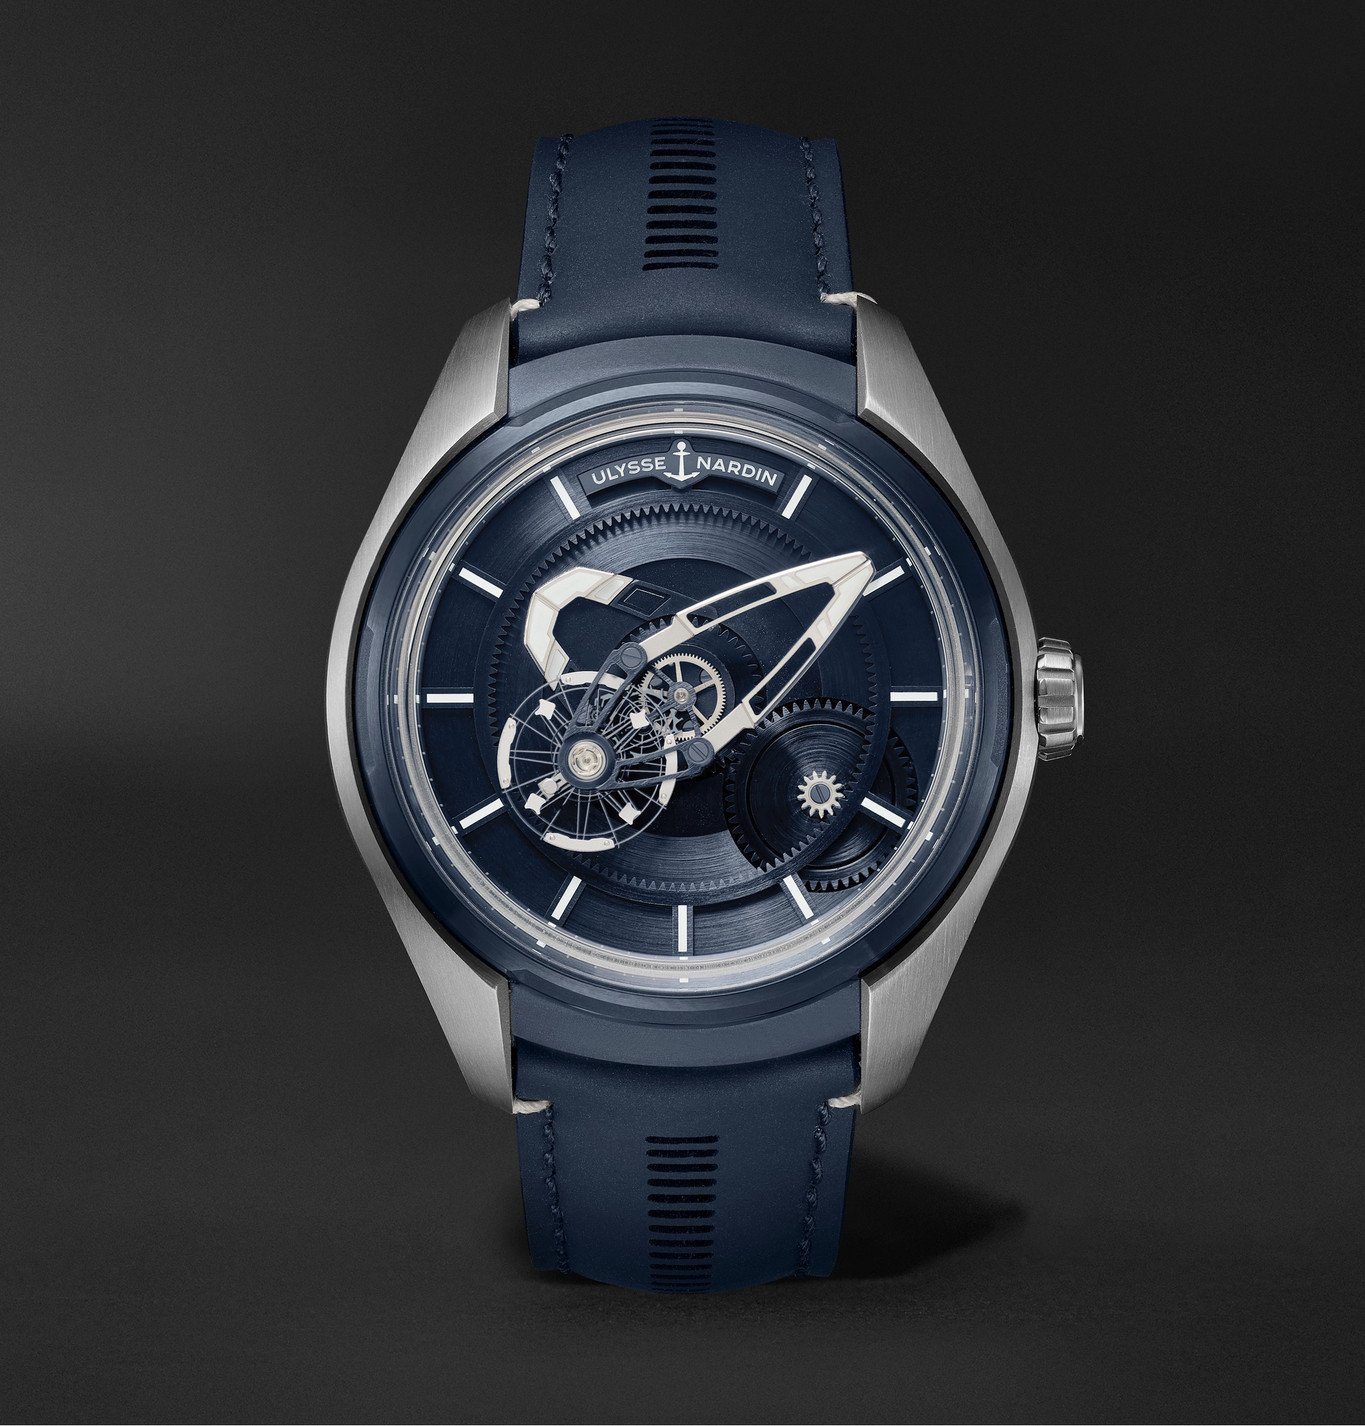 Photo: Ulysse Nardin - Freak X Automatic 43mm Titanium and Leather Watch, Ref. No. 2303-270.1/03 - Blue